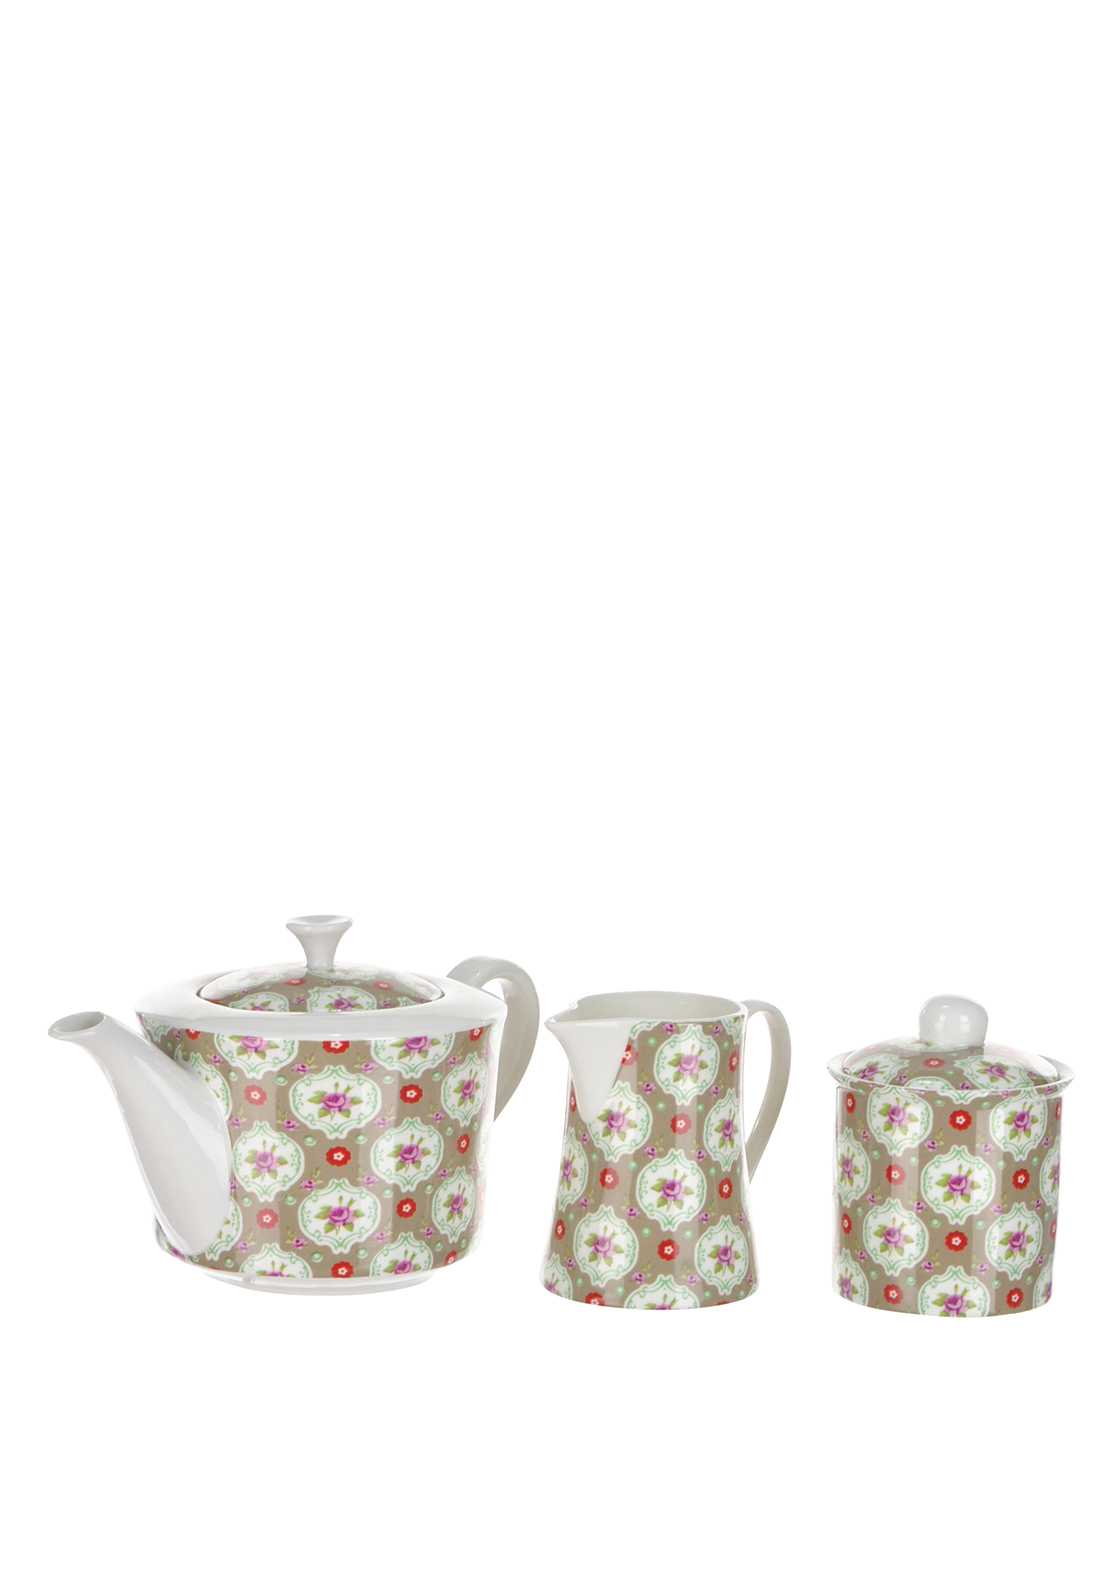 Shannonbridge Ireland Buds 3 Piece Tea Set